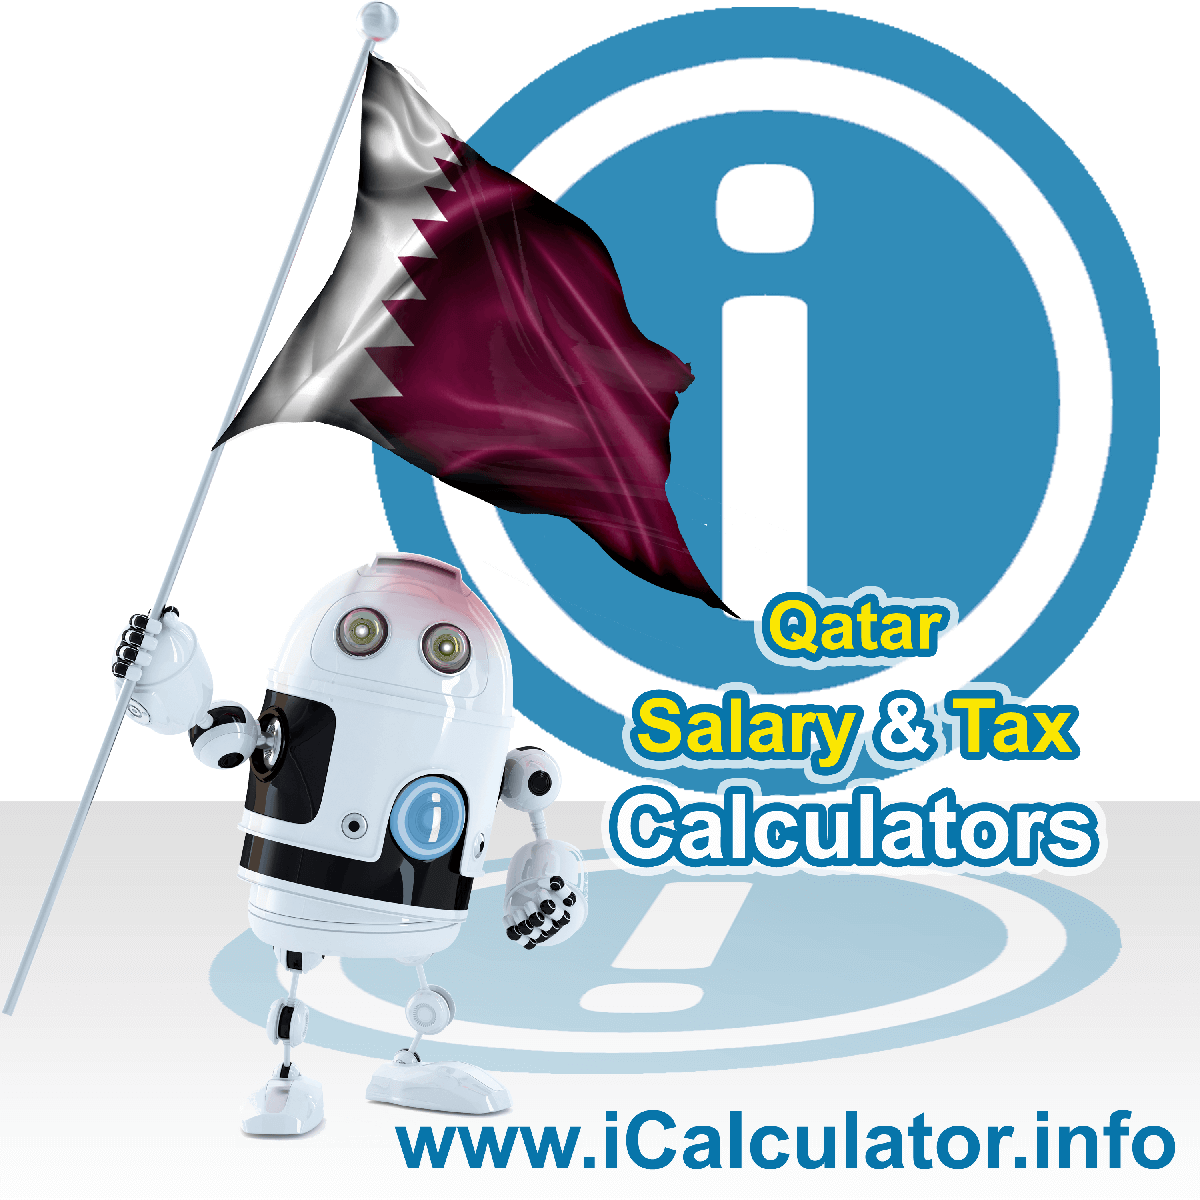 Qatar Salary Calculator. This image shows the Qatarese flag and information relating to the tax formula for the Qatar Tax Calculator